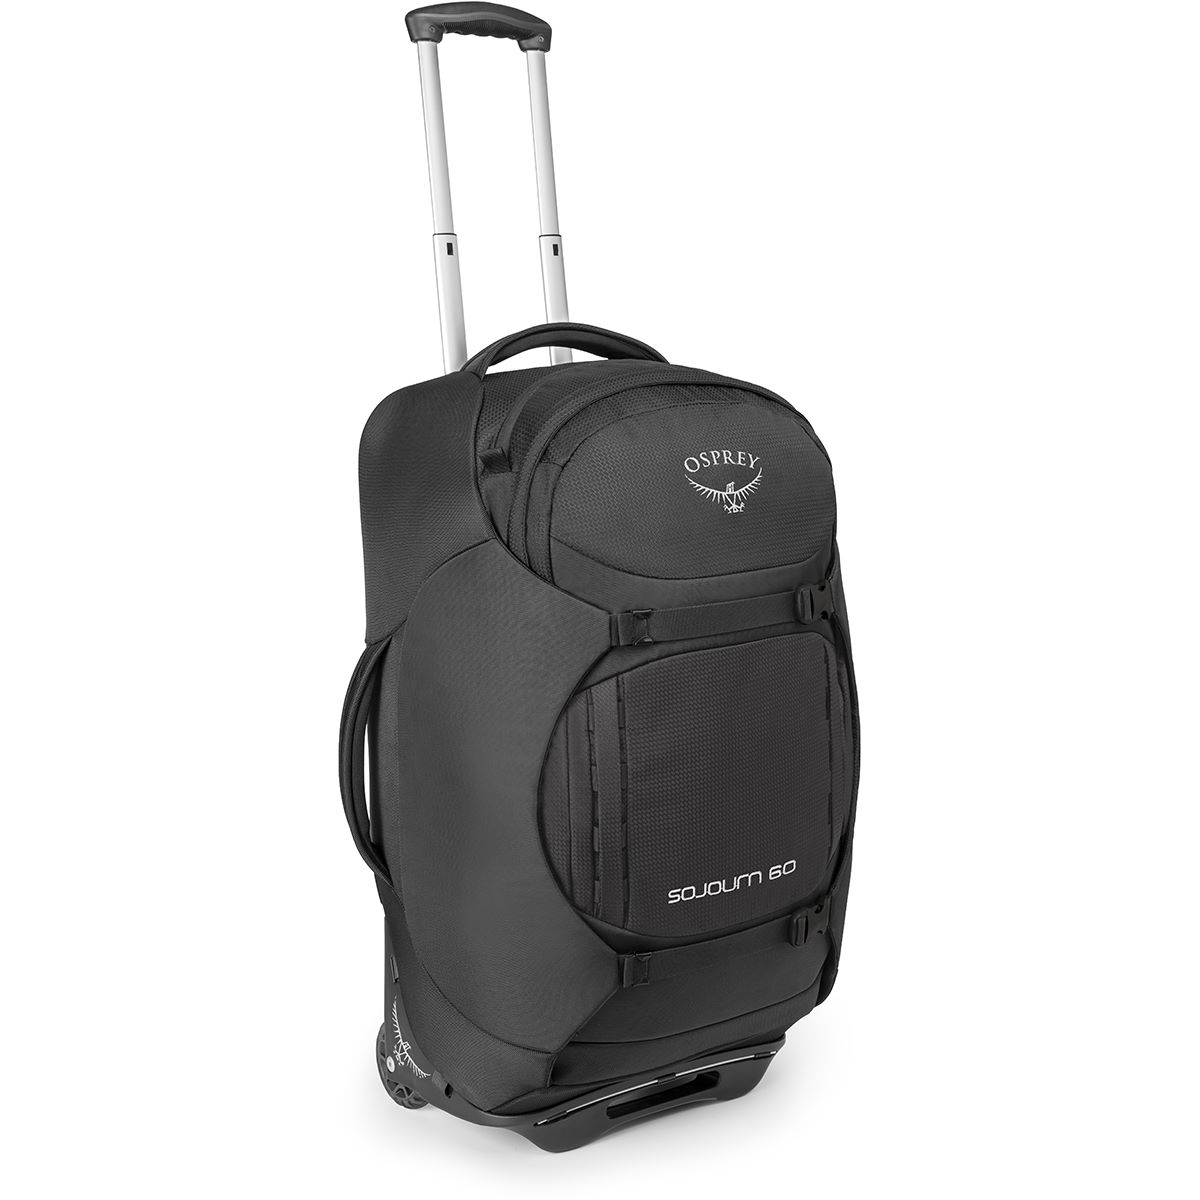 Osprey Osprey Sojourn 60 Travel Bag   Travel Bags